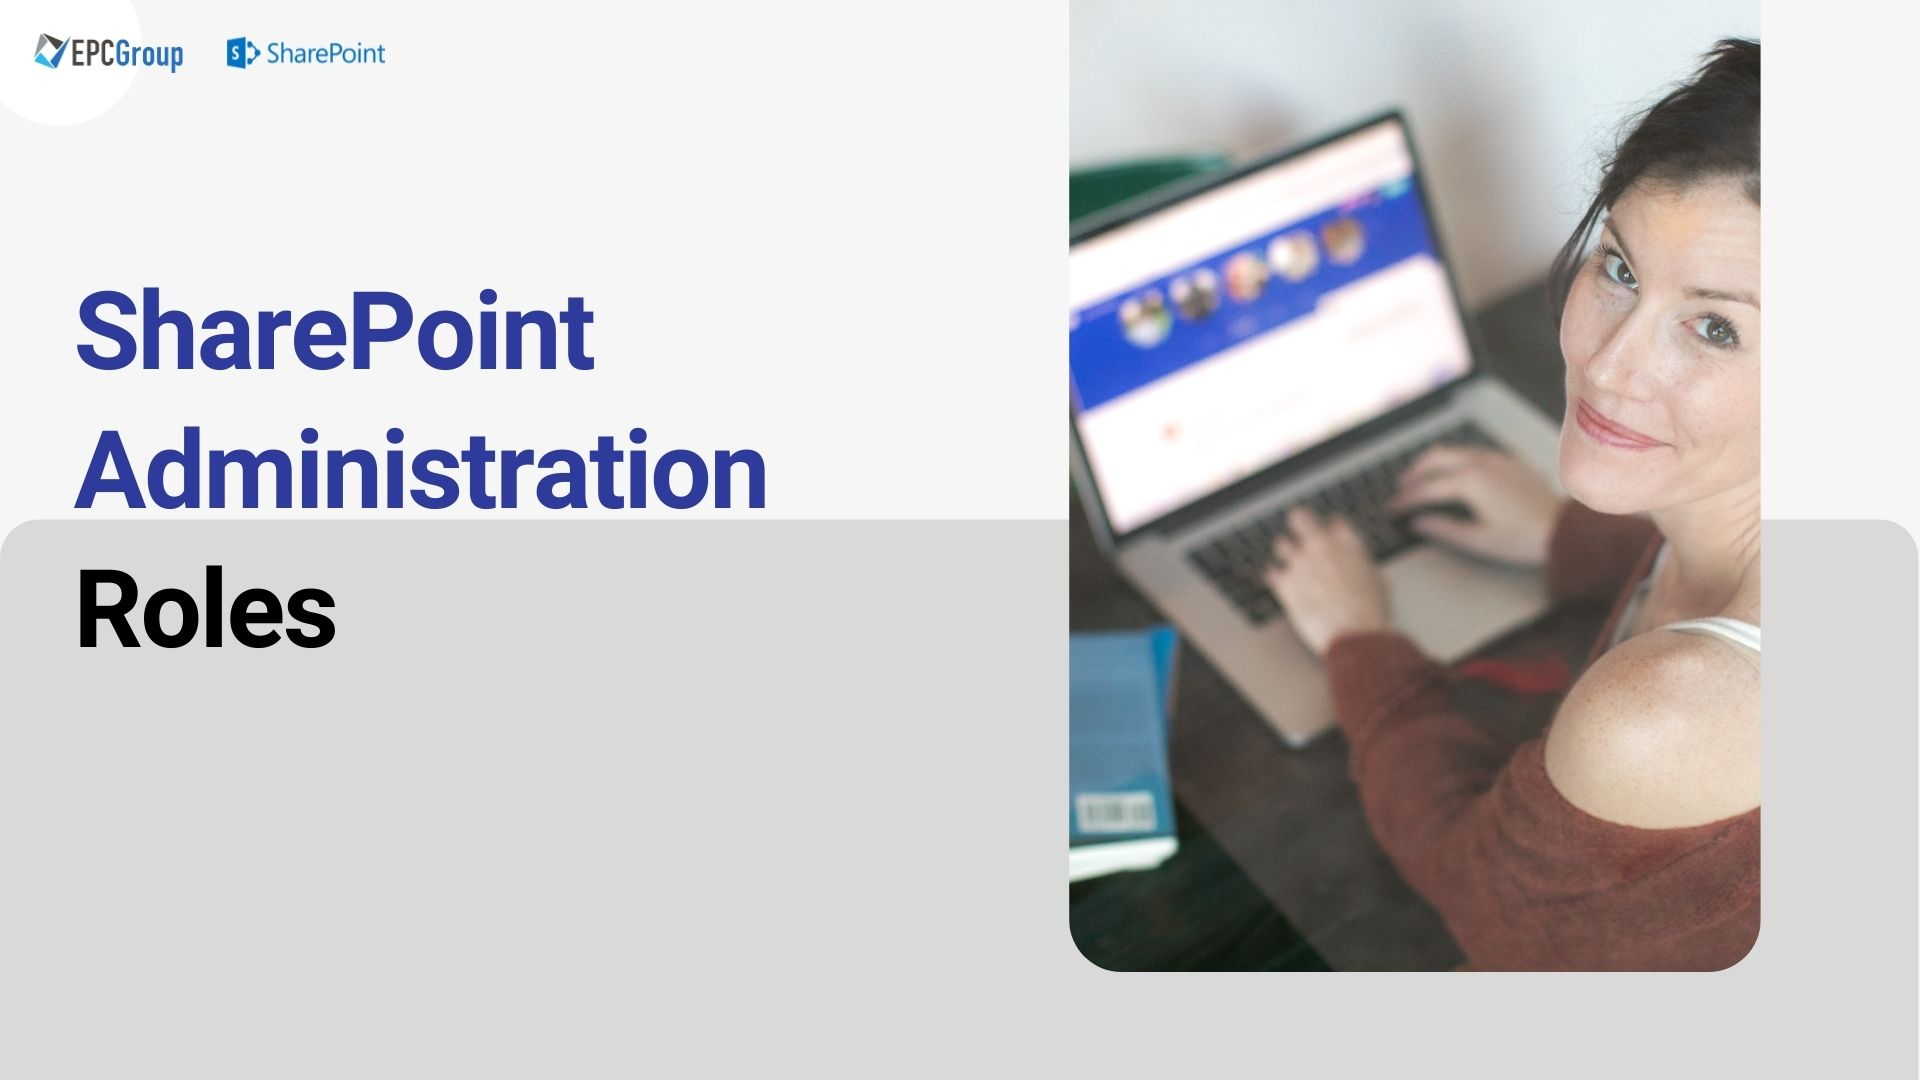 SharePoint Administration Roles in Microsoft 365 - thumb image